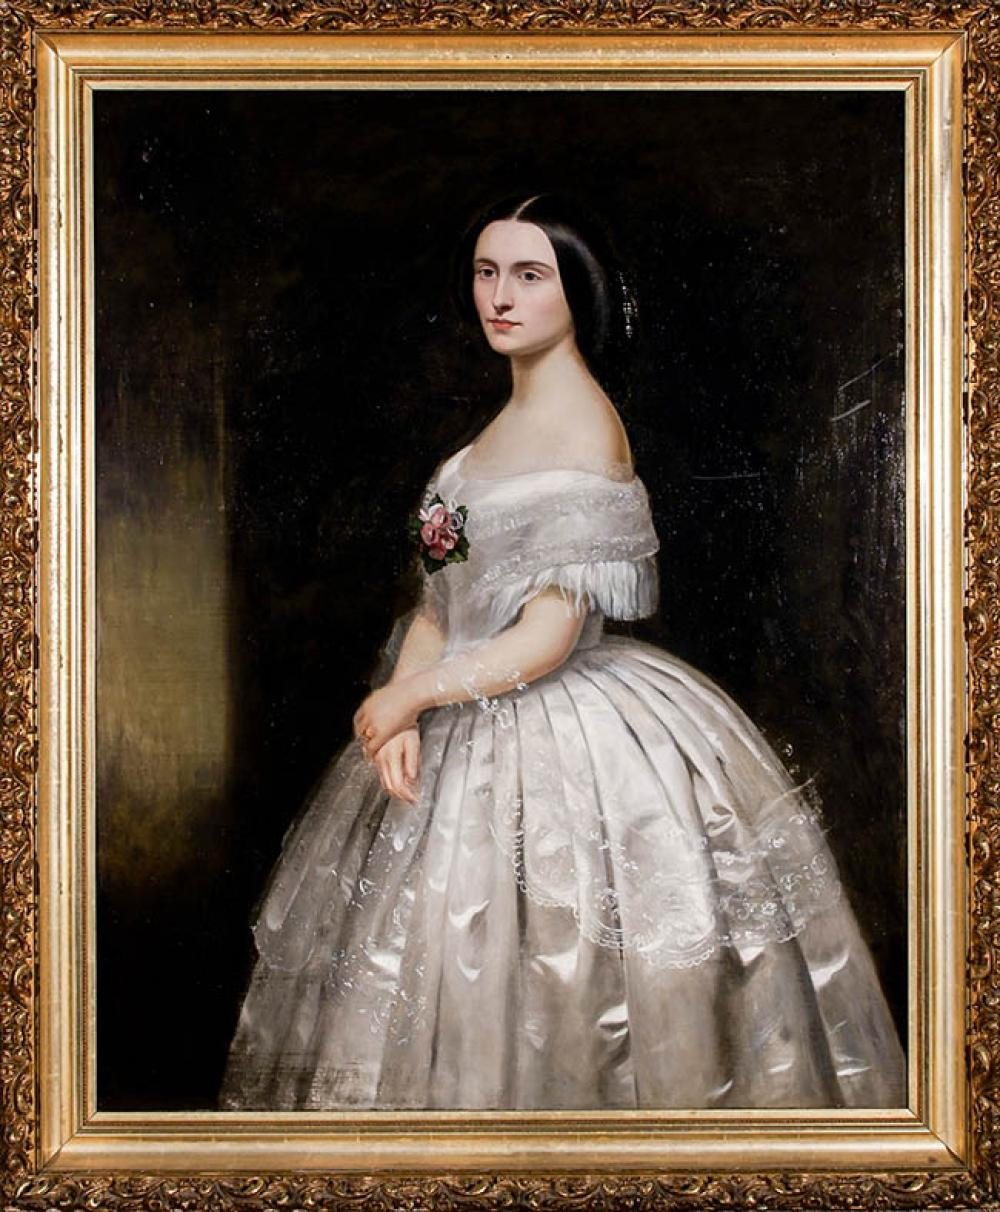 British School, Mid-19th Century, Portrait of Lady and Portrait of Gentleman, Two Oils on Canvas, each 50 x 40 in